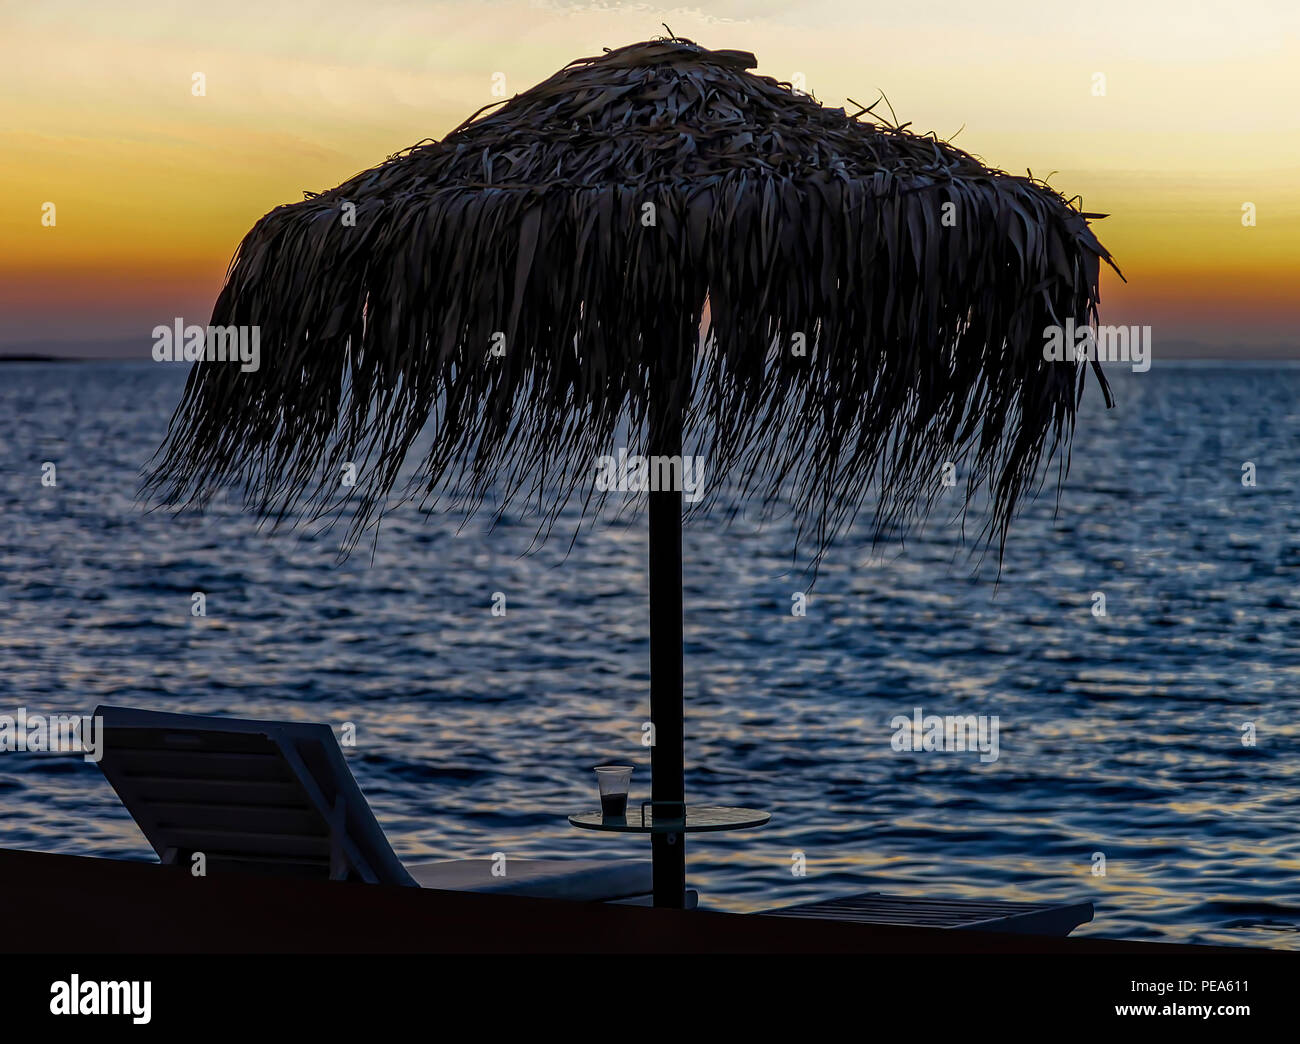 Beach Umbrella.  Silhouete of straw umbrellla and deckchair on beach on a Greek Island at sunset. Seascape Photography. Stock Image. - Stock Image